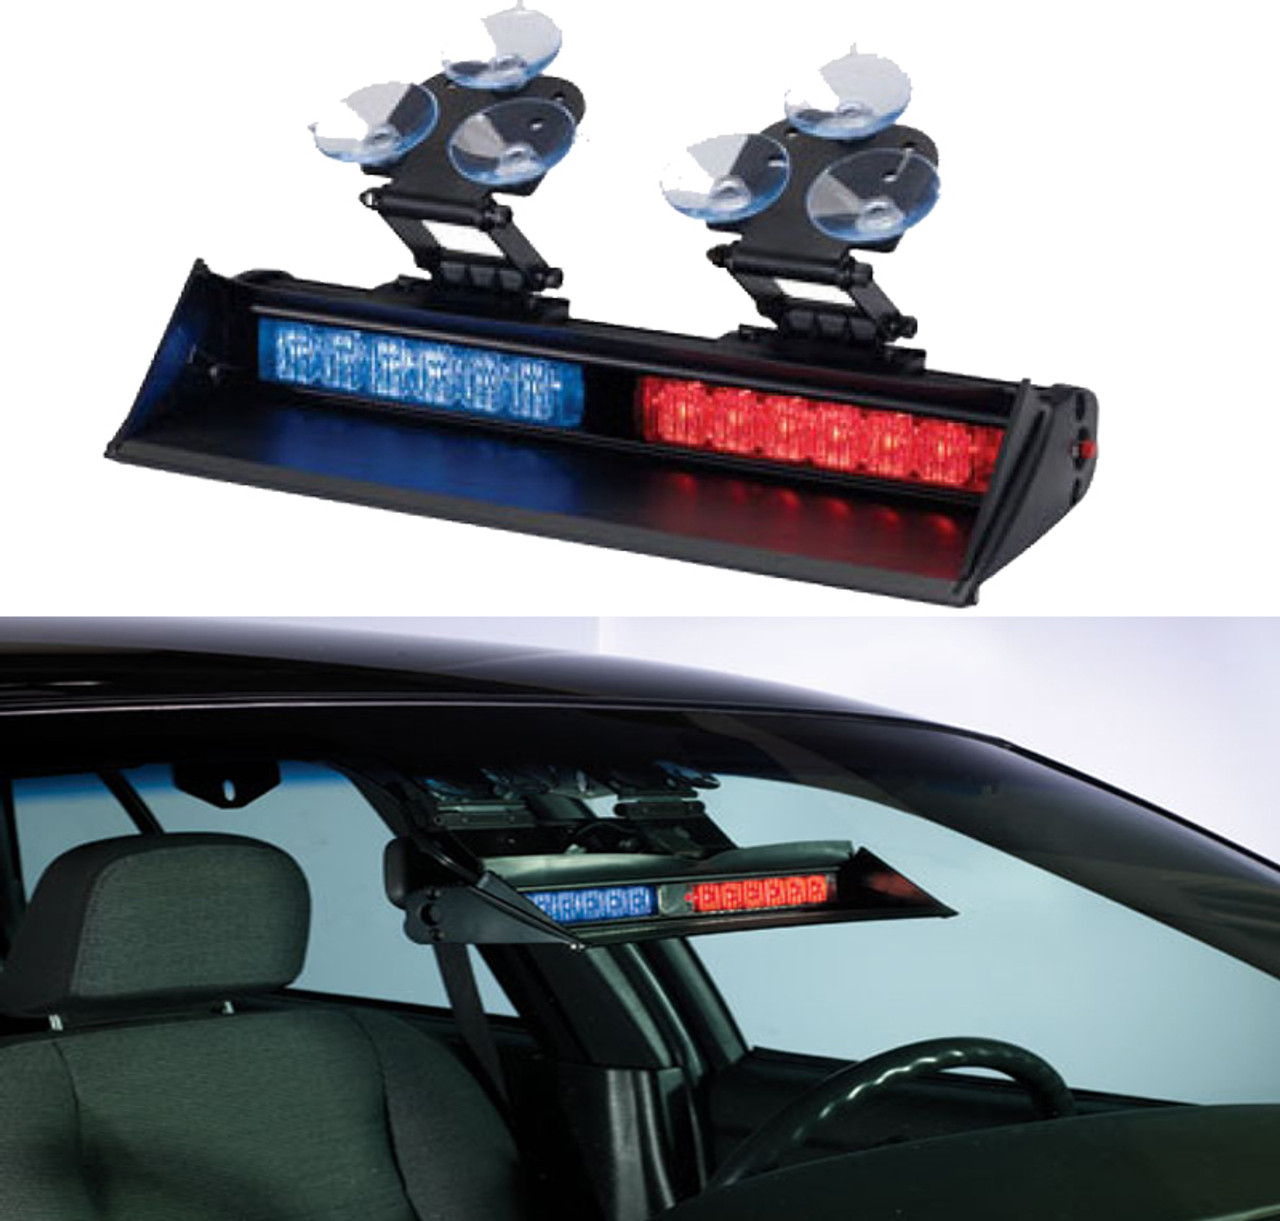 Code-3 XT6 Series Dual head Dash/Windshield Deck Interior 12-LED light 12/24 volt with Shroud, Plug & Suction Cup mount XT602